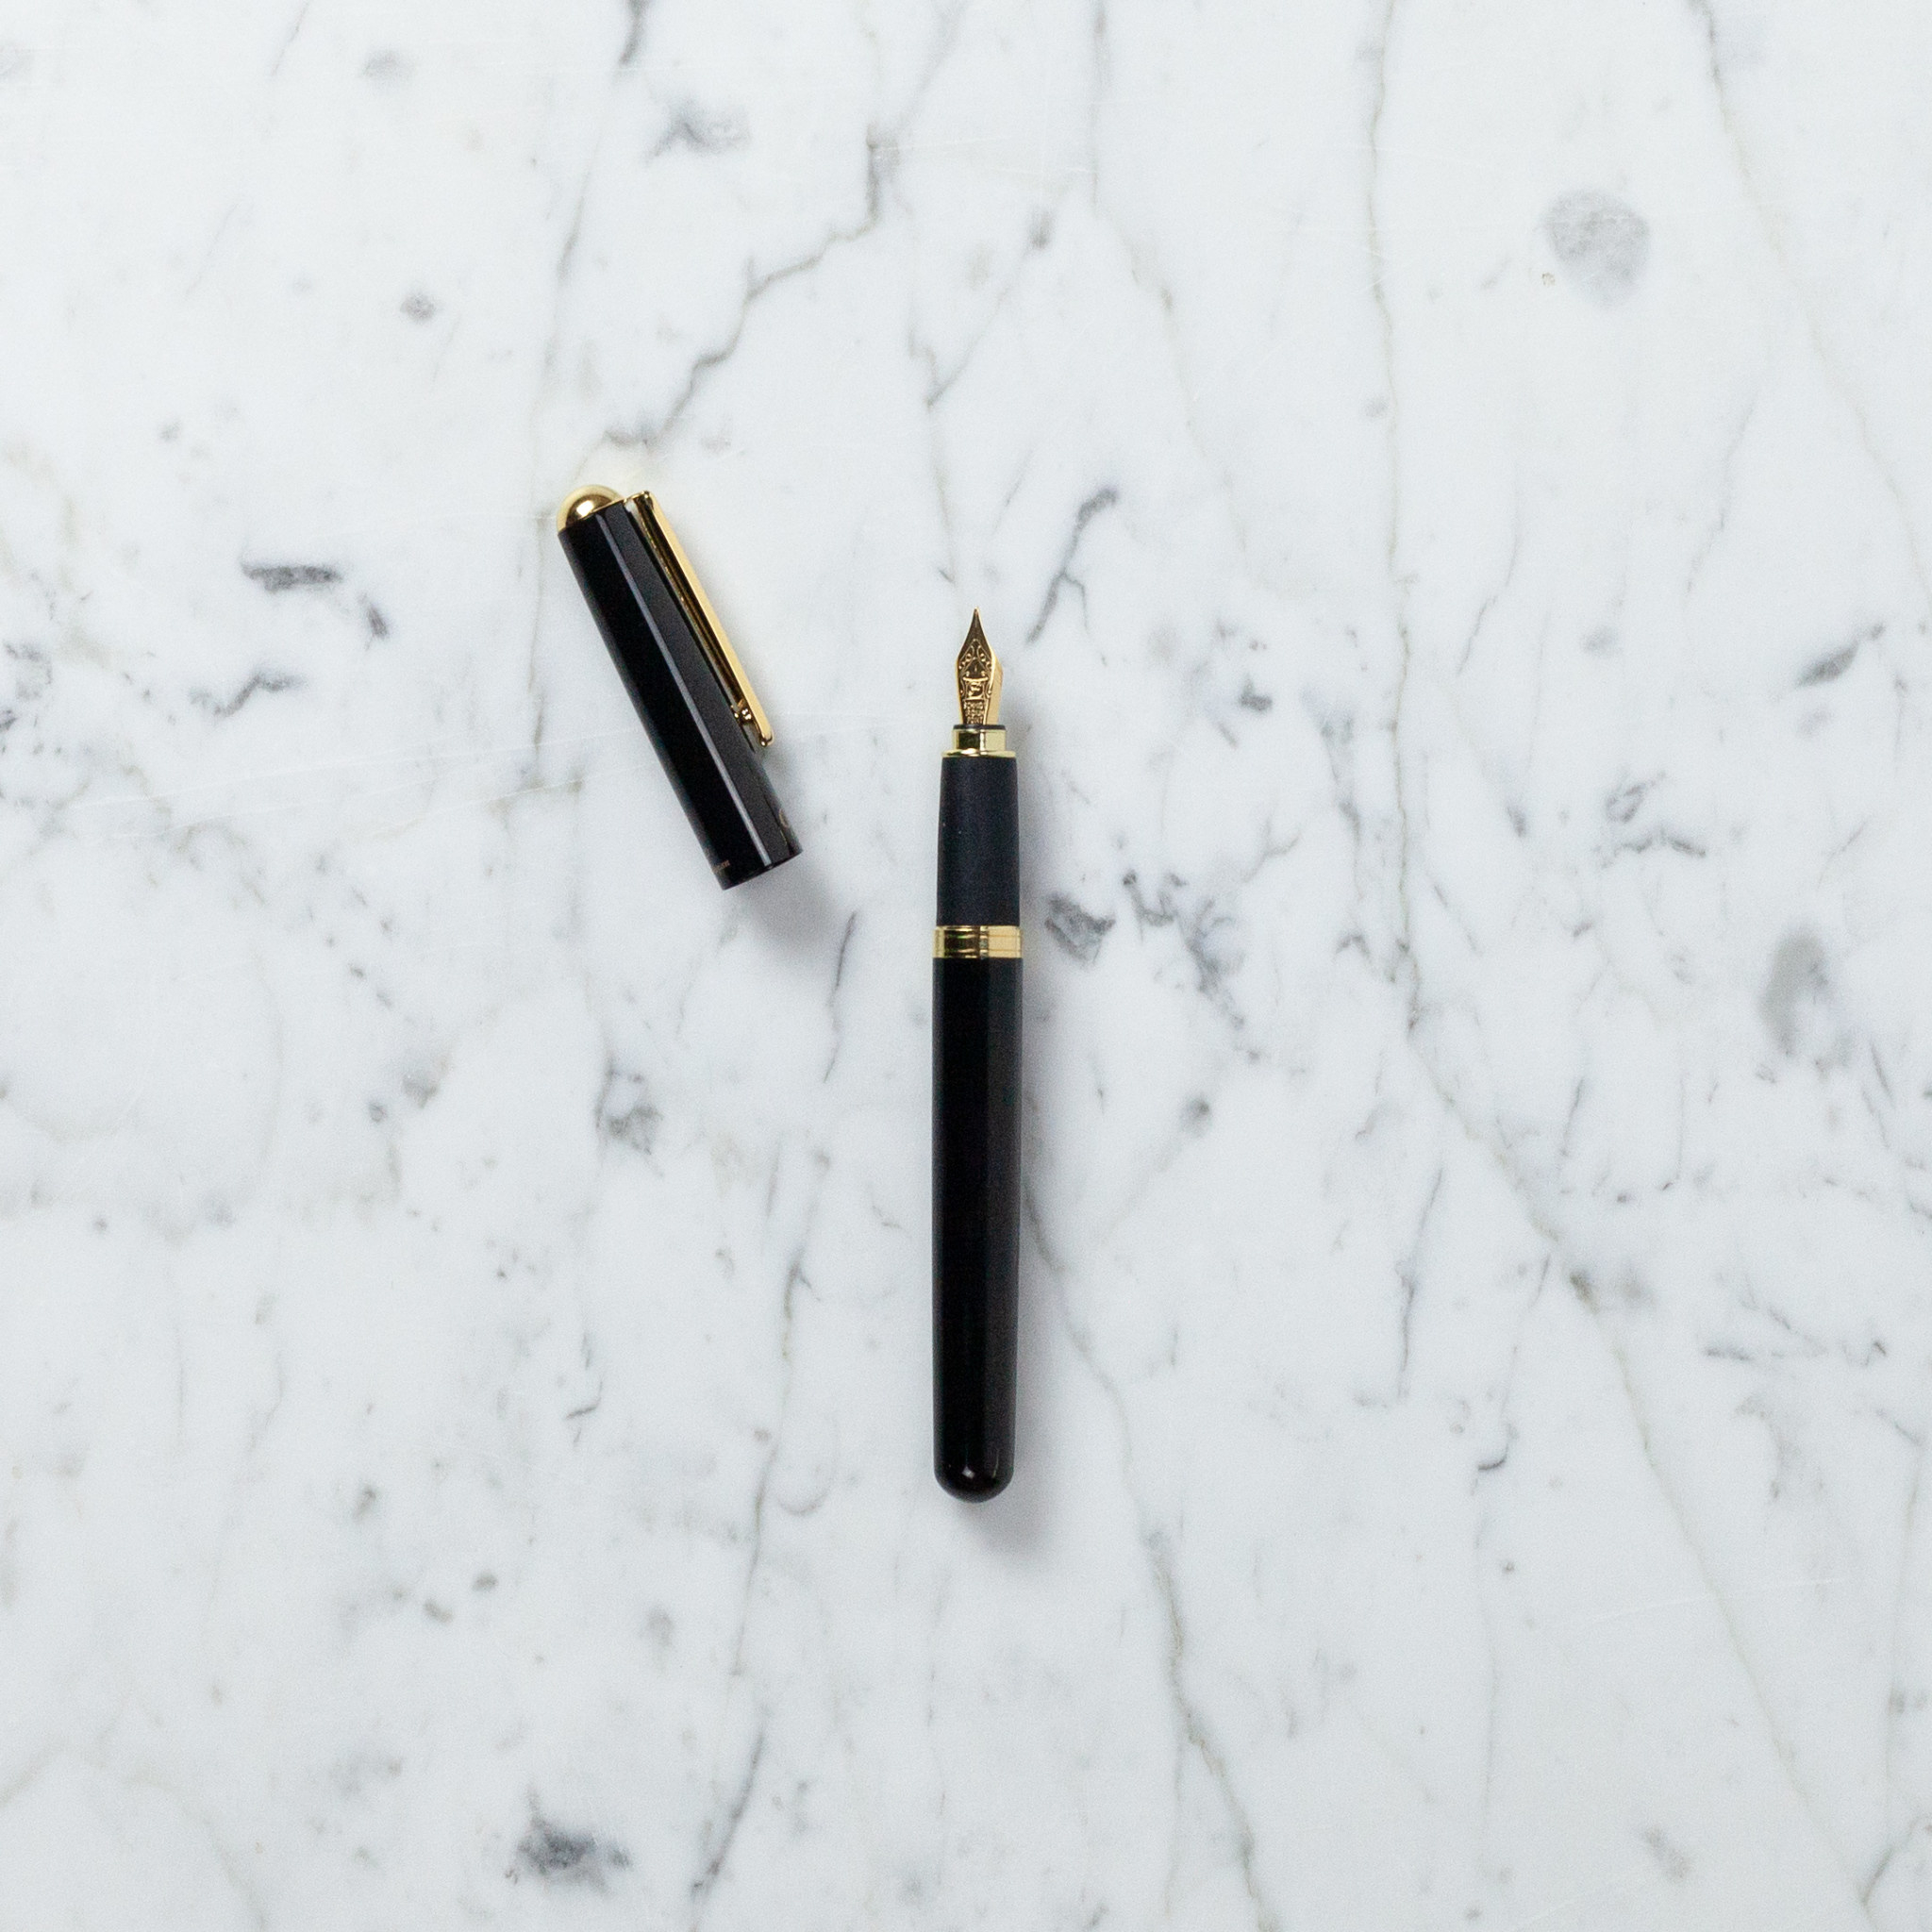 Ohto Celsus Fountain Pen - Black